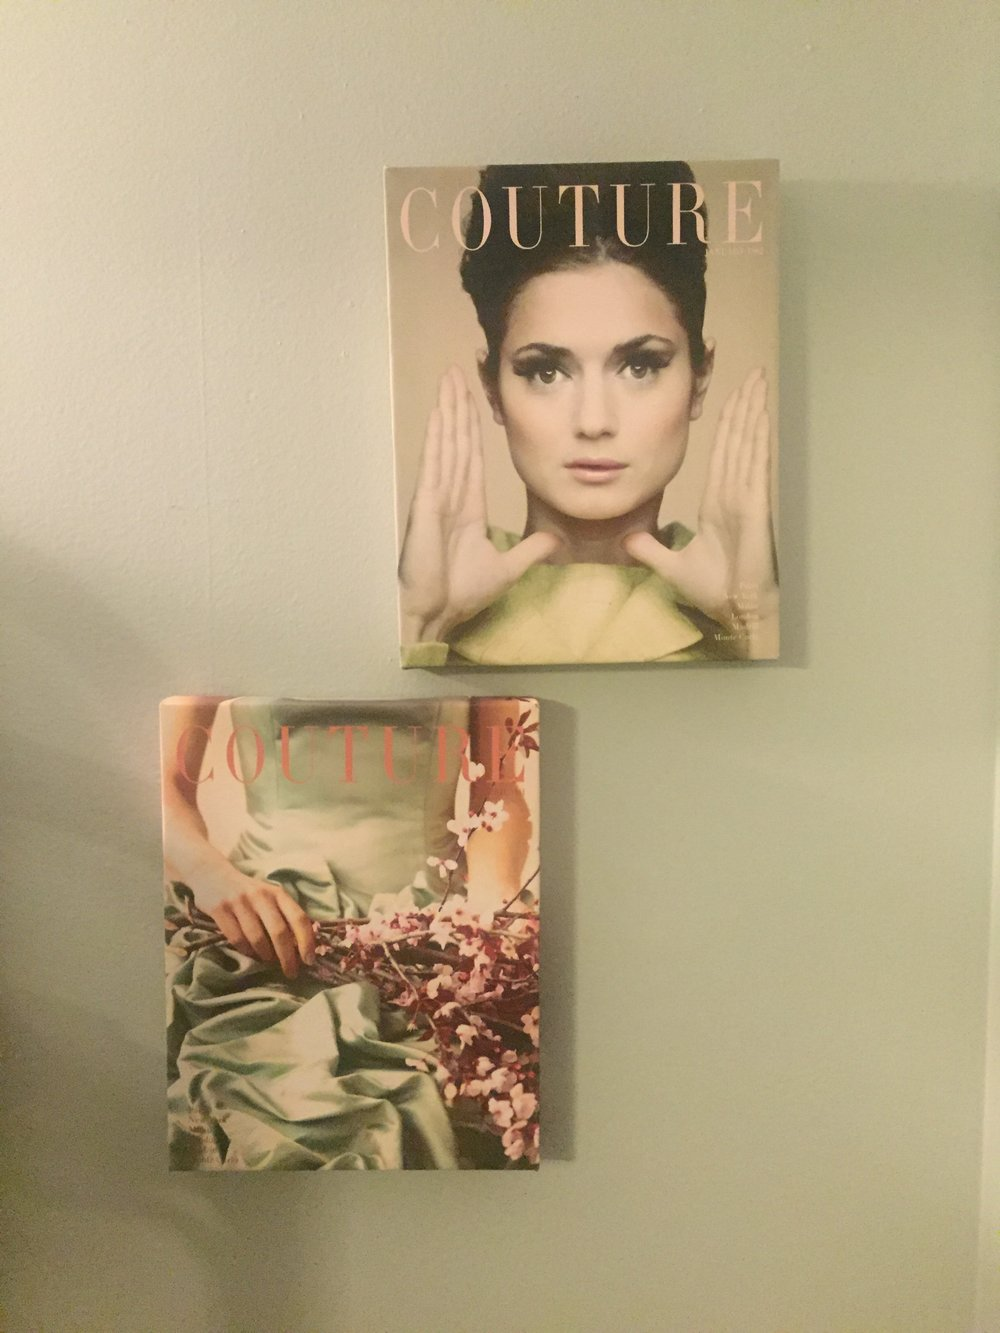 Couture - $10 (each)